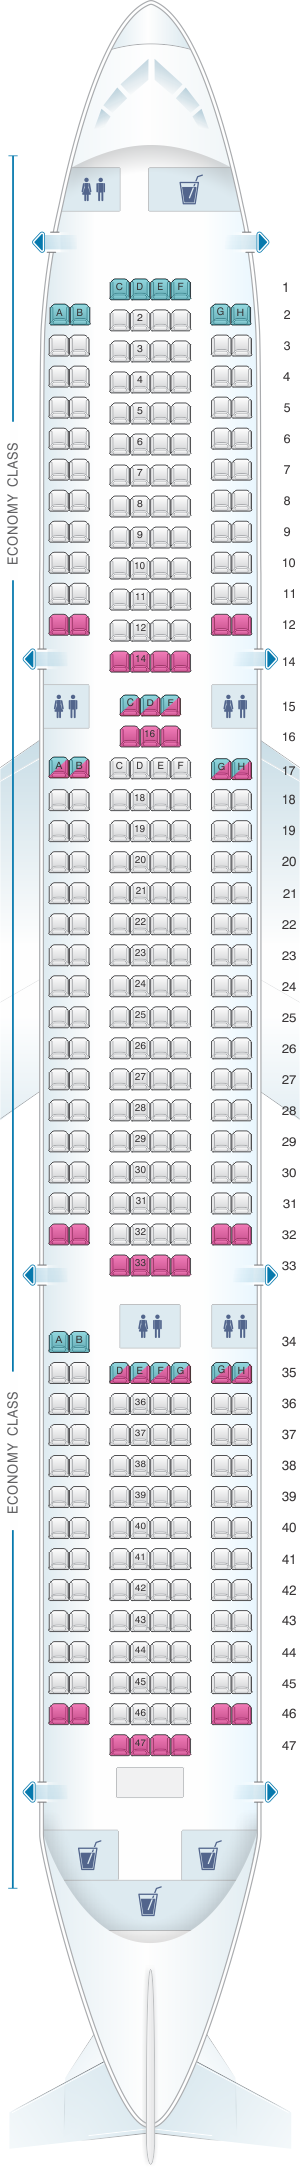 Seat map for TUI Boeing B767-300 328 pax